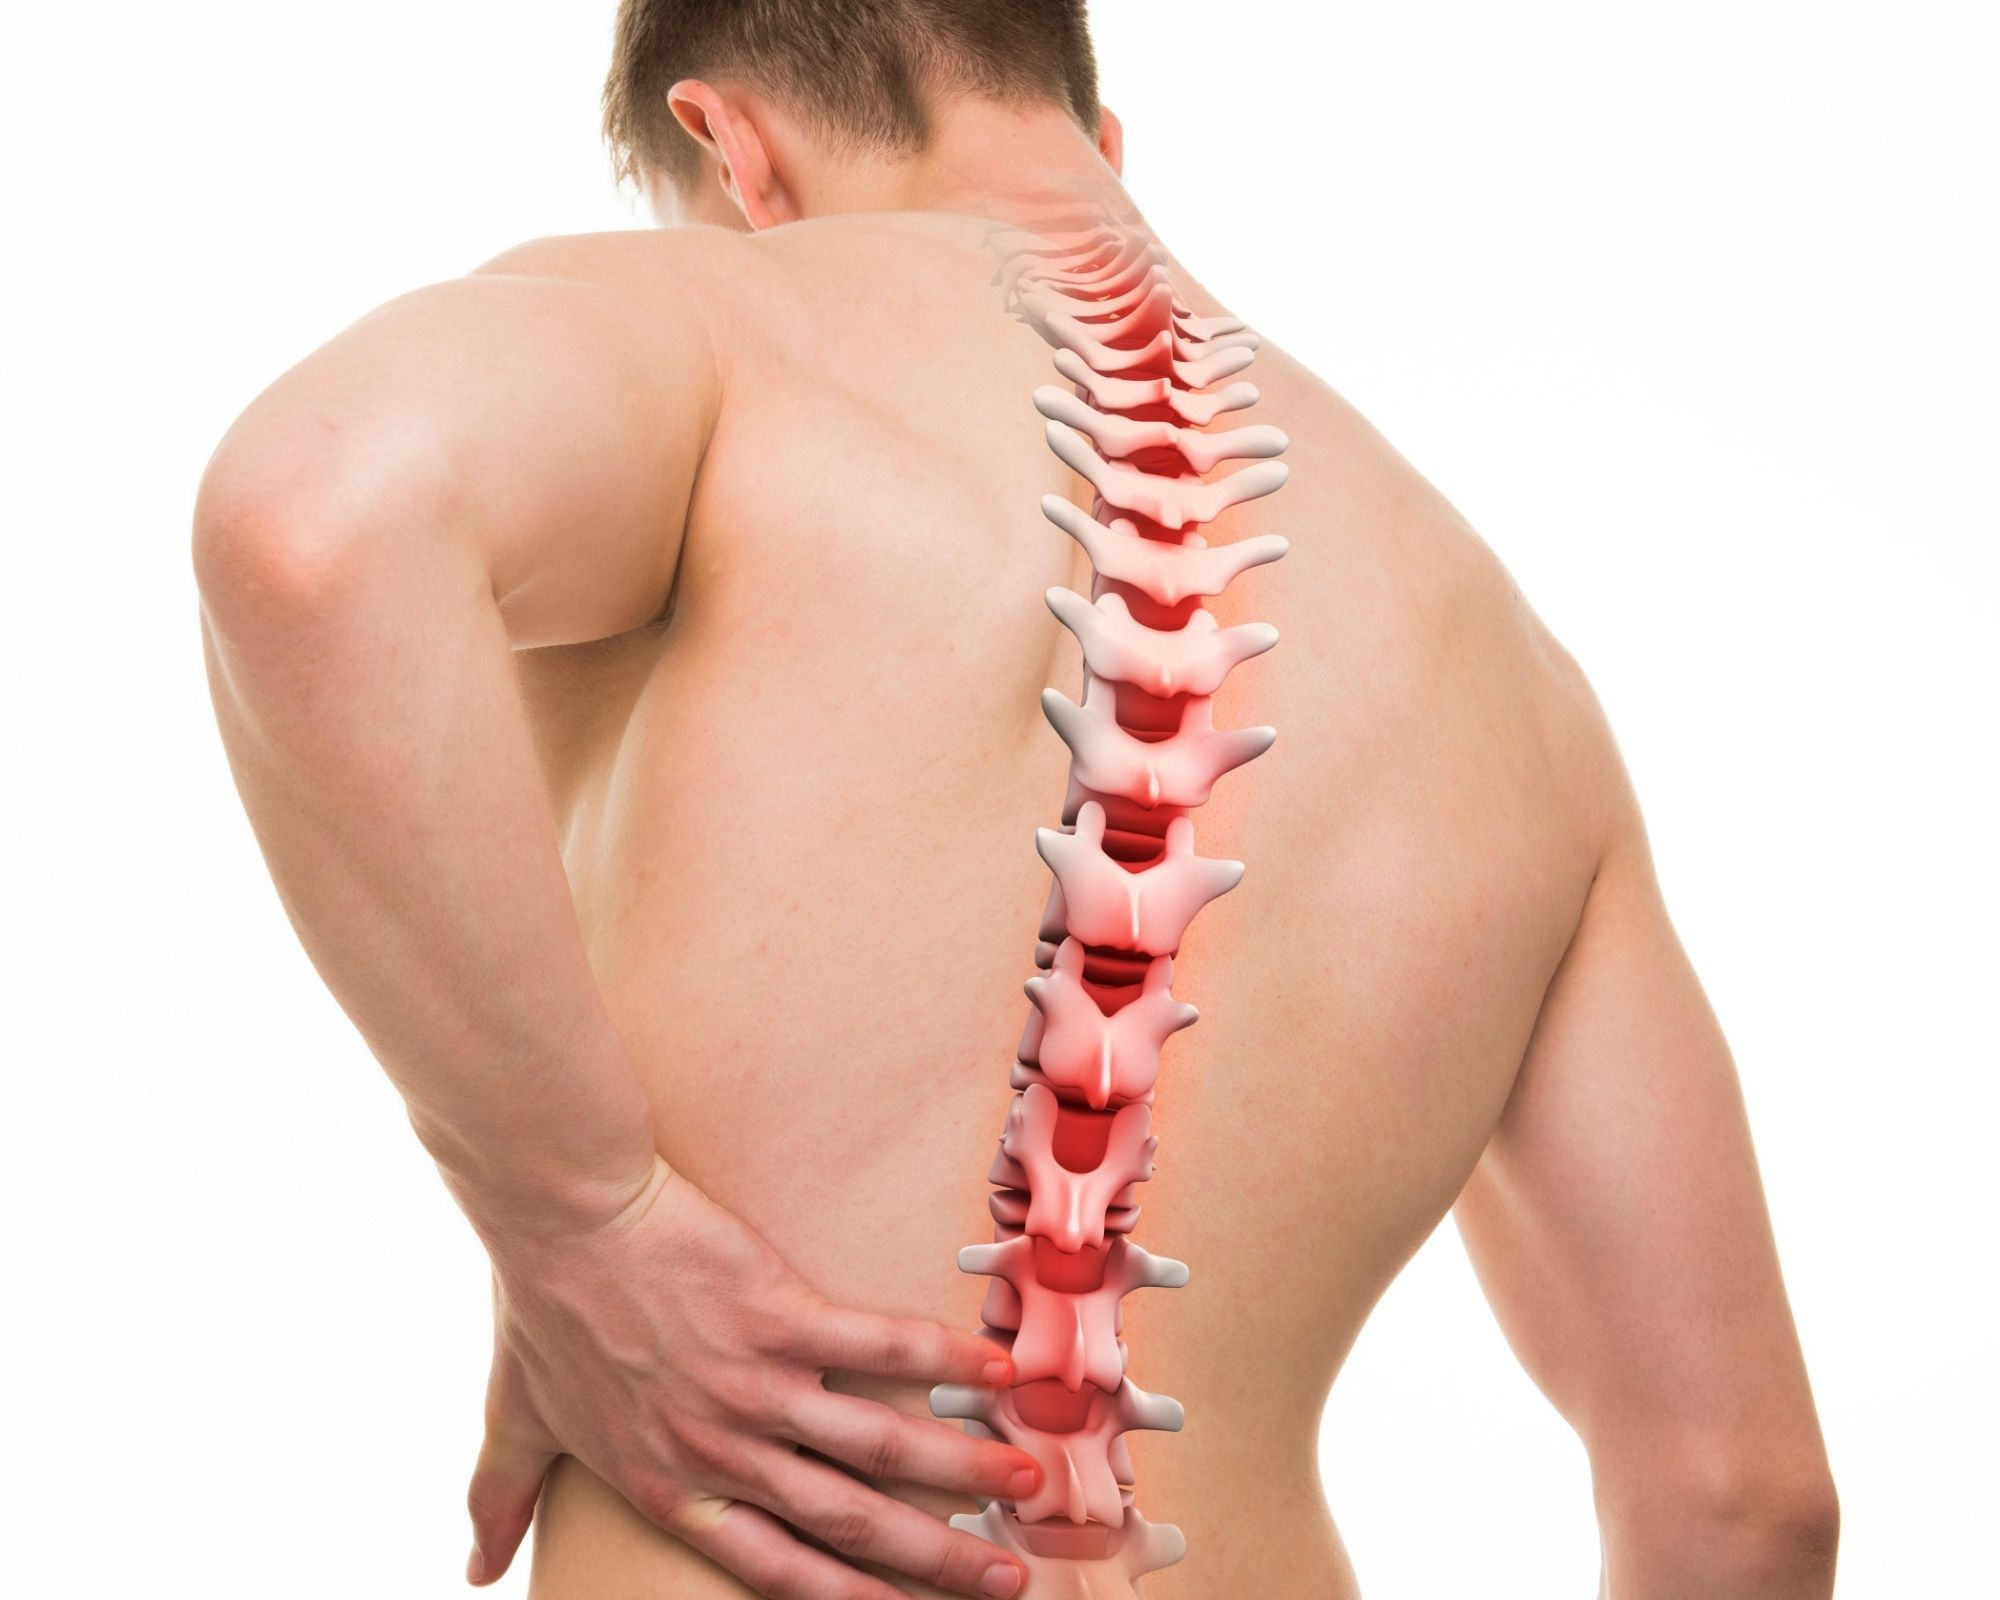 Male holding his lower back. Spine illuminated to indicate pain.